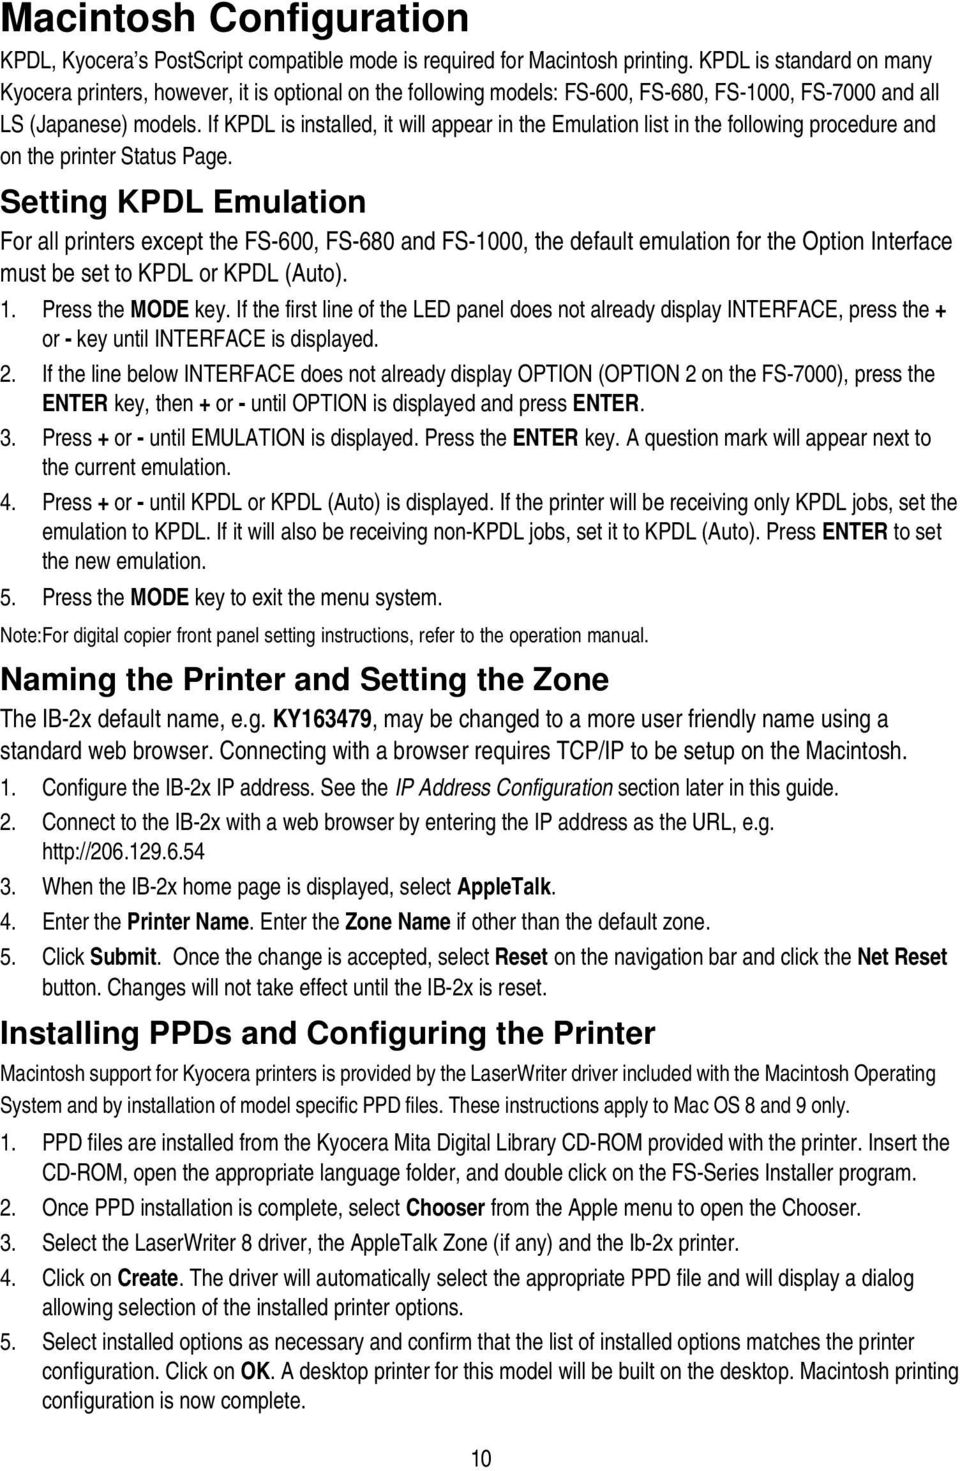 If KPDL is installed, it will appear in the Emulation list in the following procedure and on the printer Status Page.